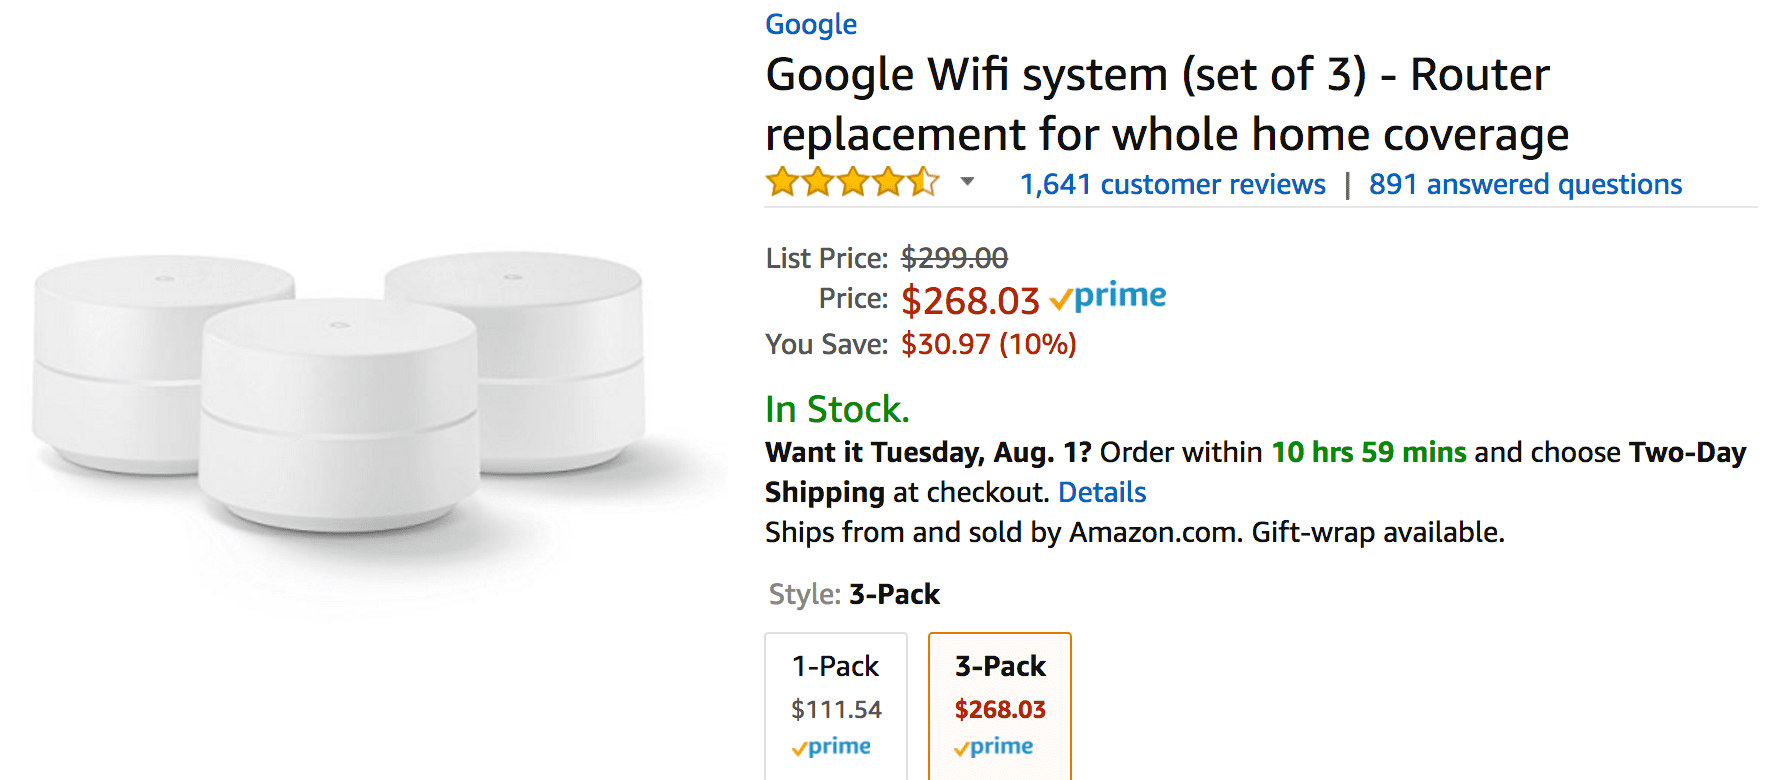 Google Wifi is becoming everyone's favorite mesh system